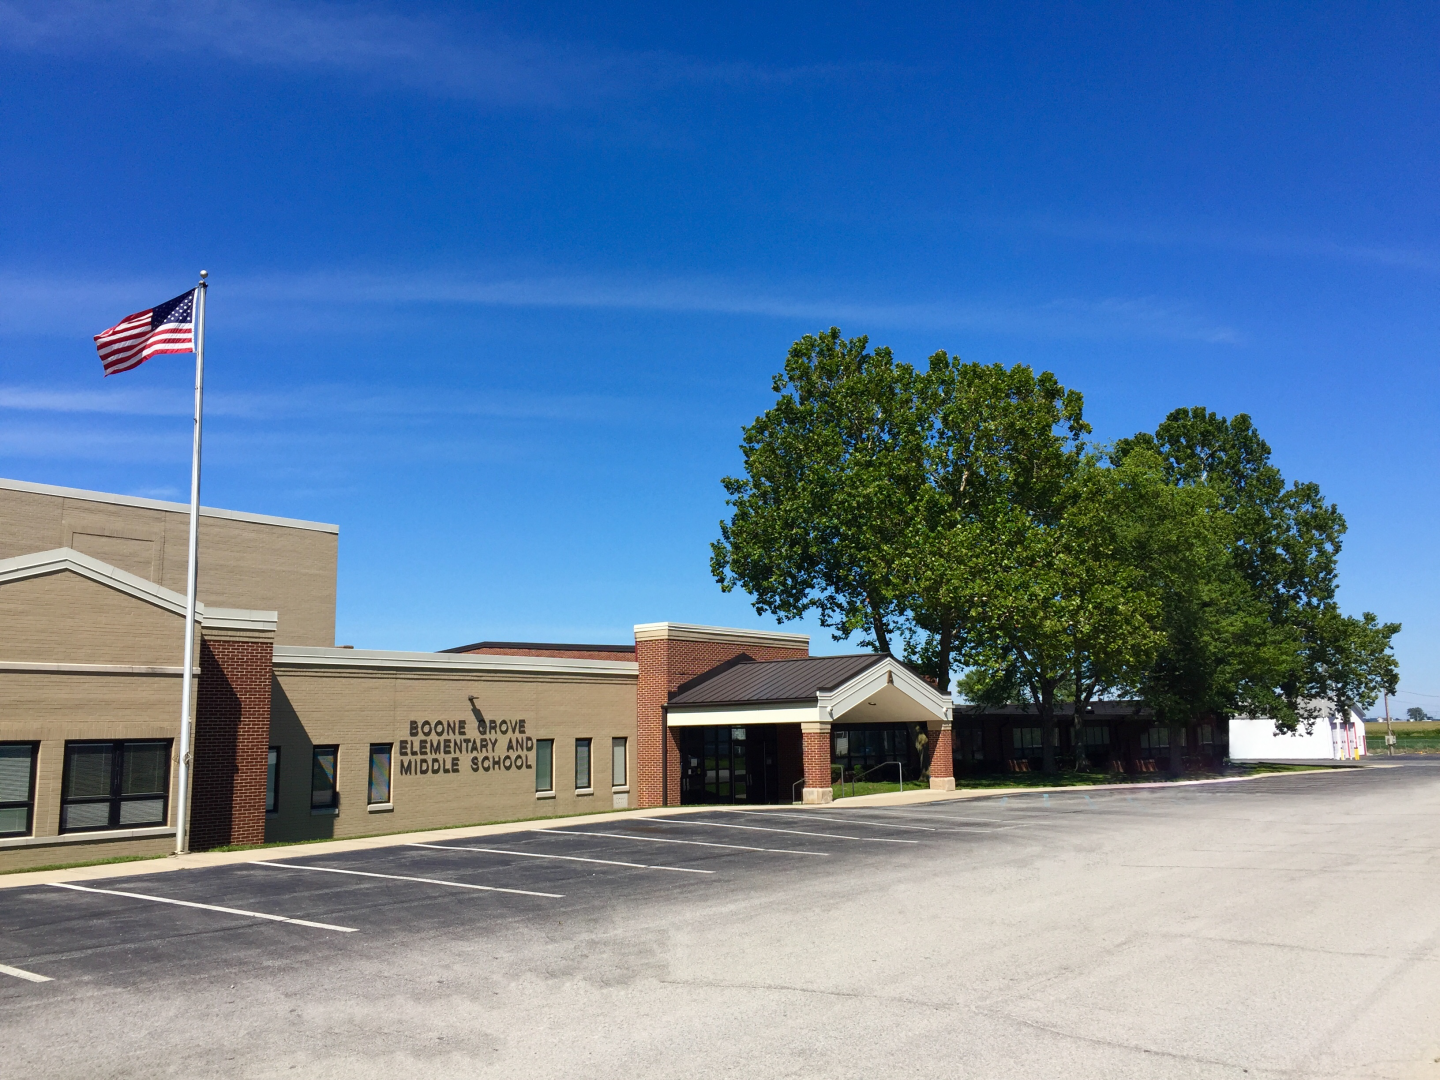 The Boone Grove Elementary and Middle School Building